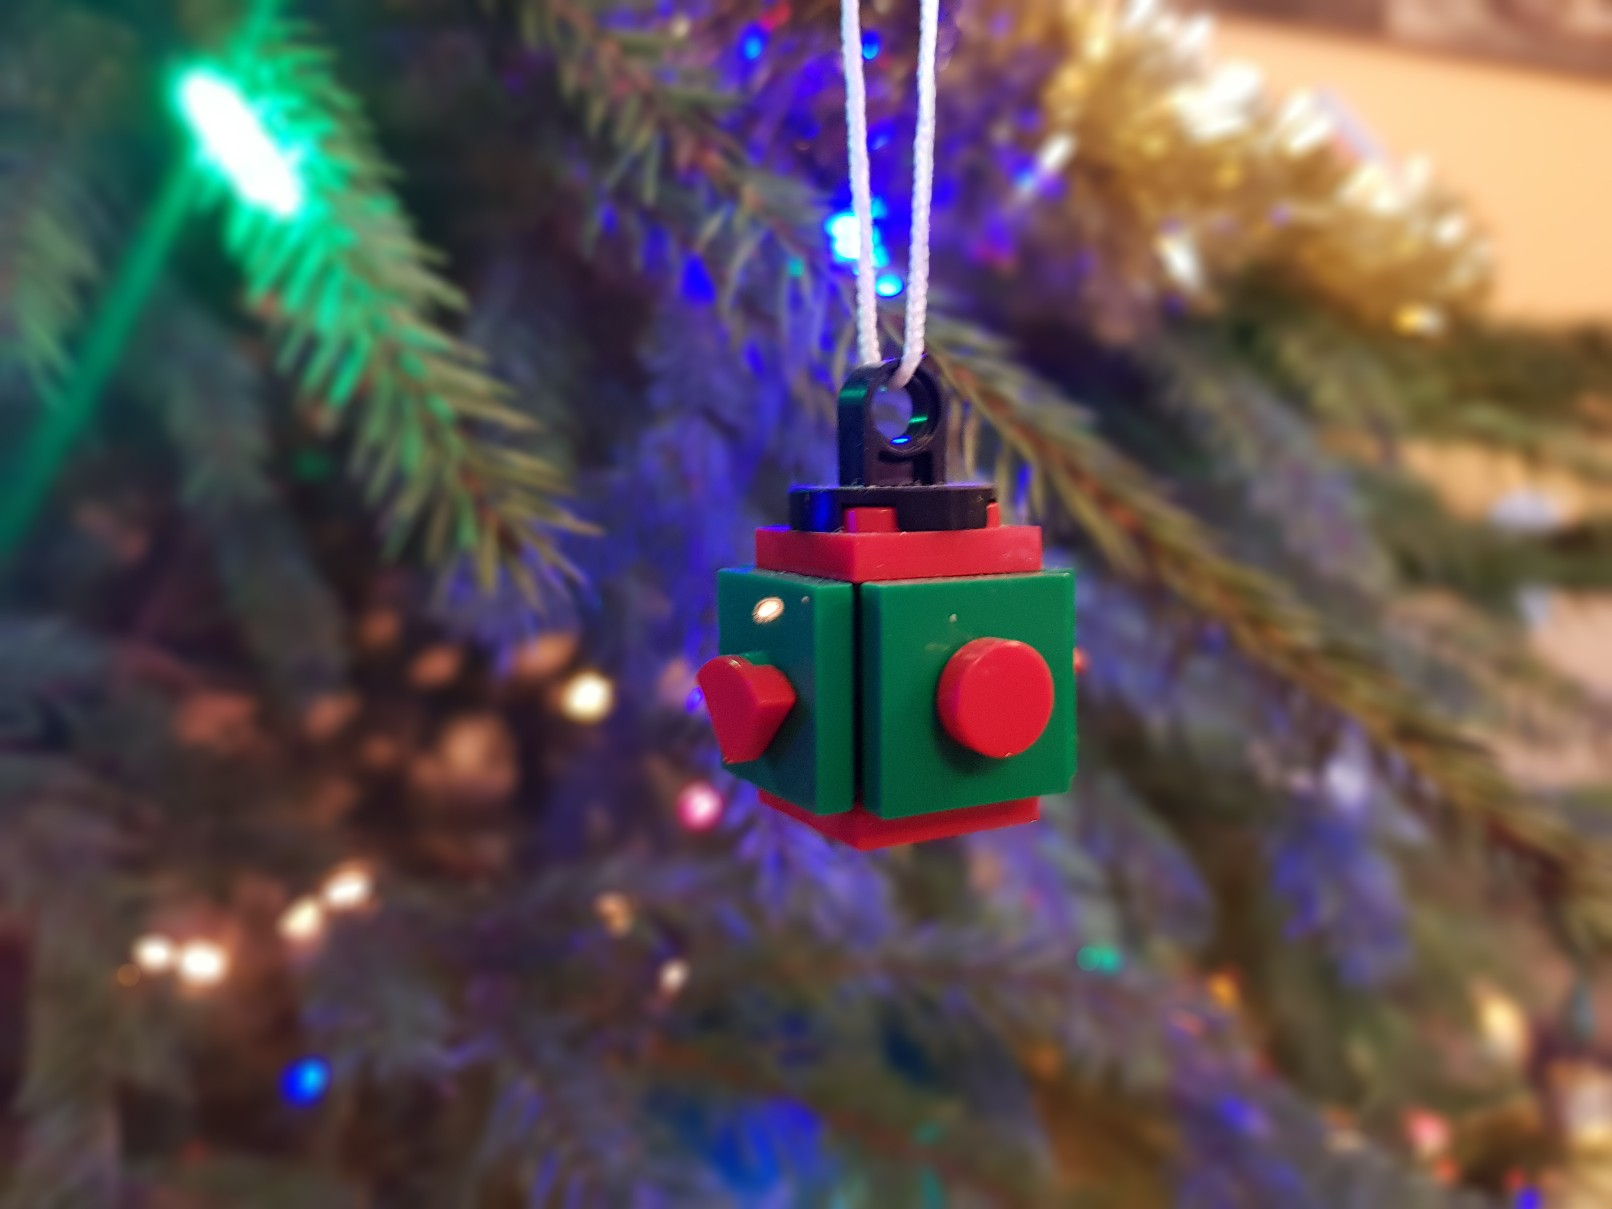 lego moc christmas baubles ornament ball small red green